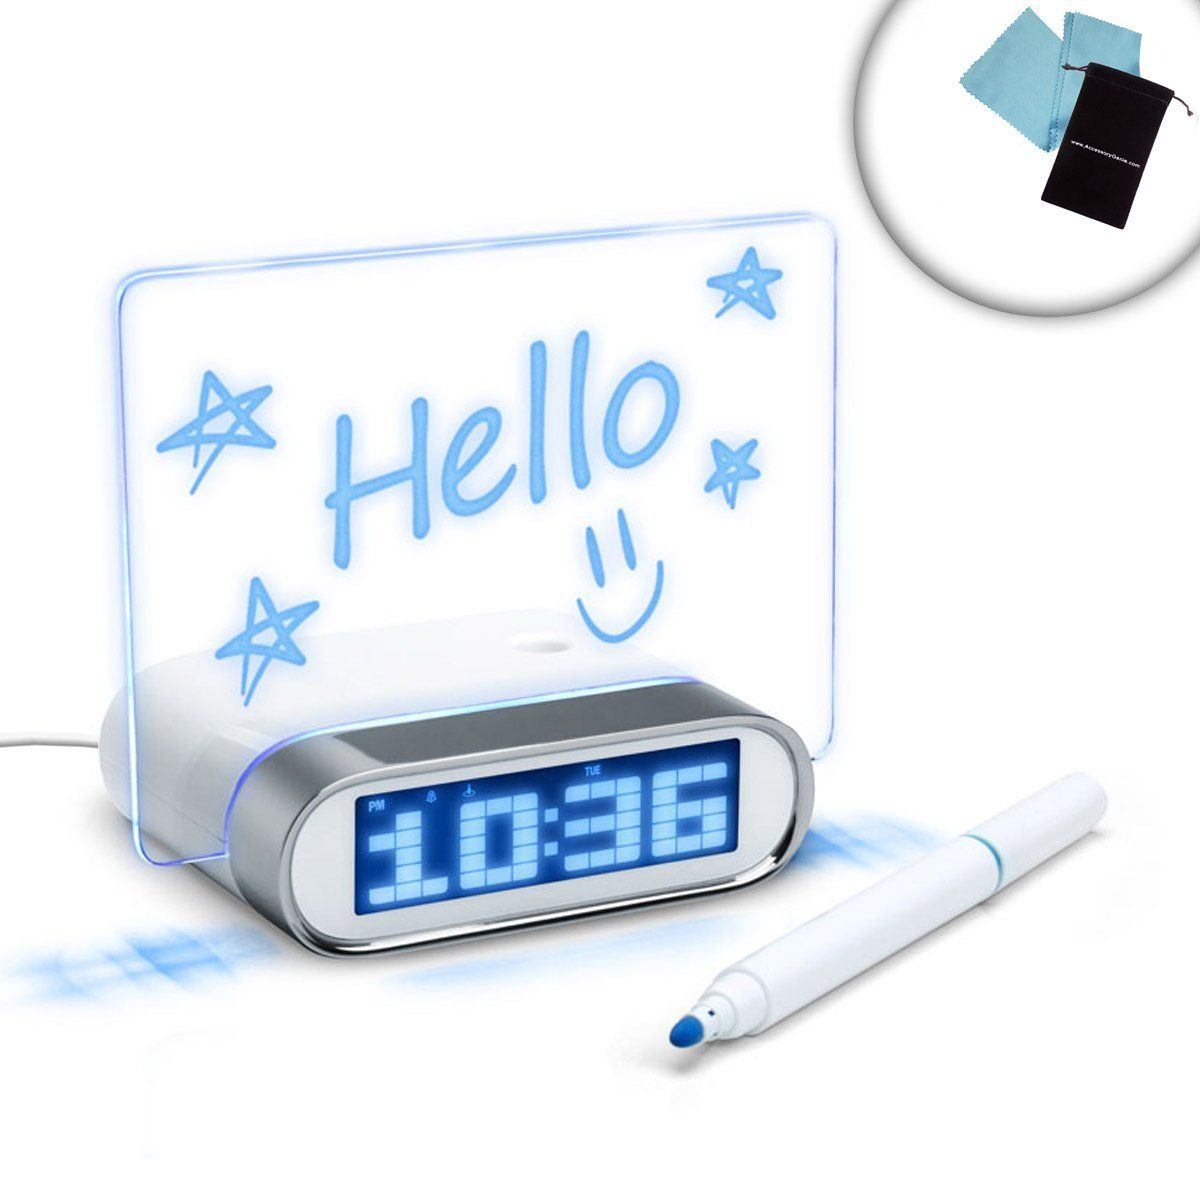 Enhance Glowing Memo Alarm Clock With 4 Port Usb 2 0 Hub Blue Led Time Date Temperature Display Works With Apple S With Images Alarm Clock Clock Computer Accessories